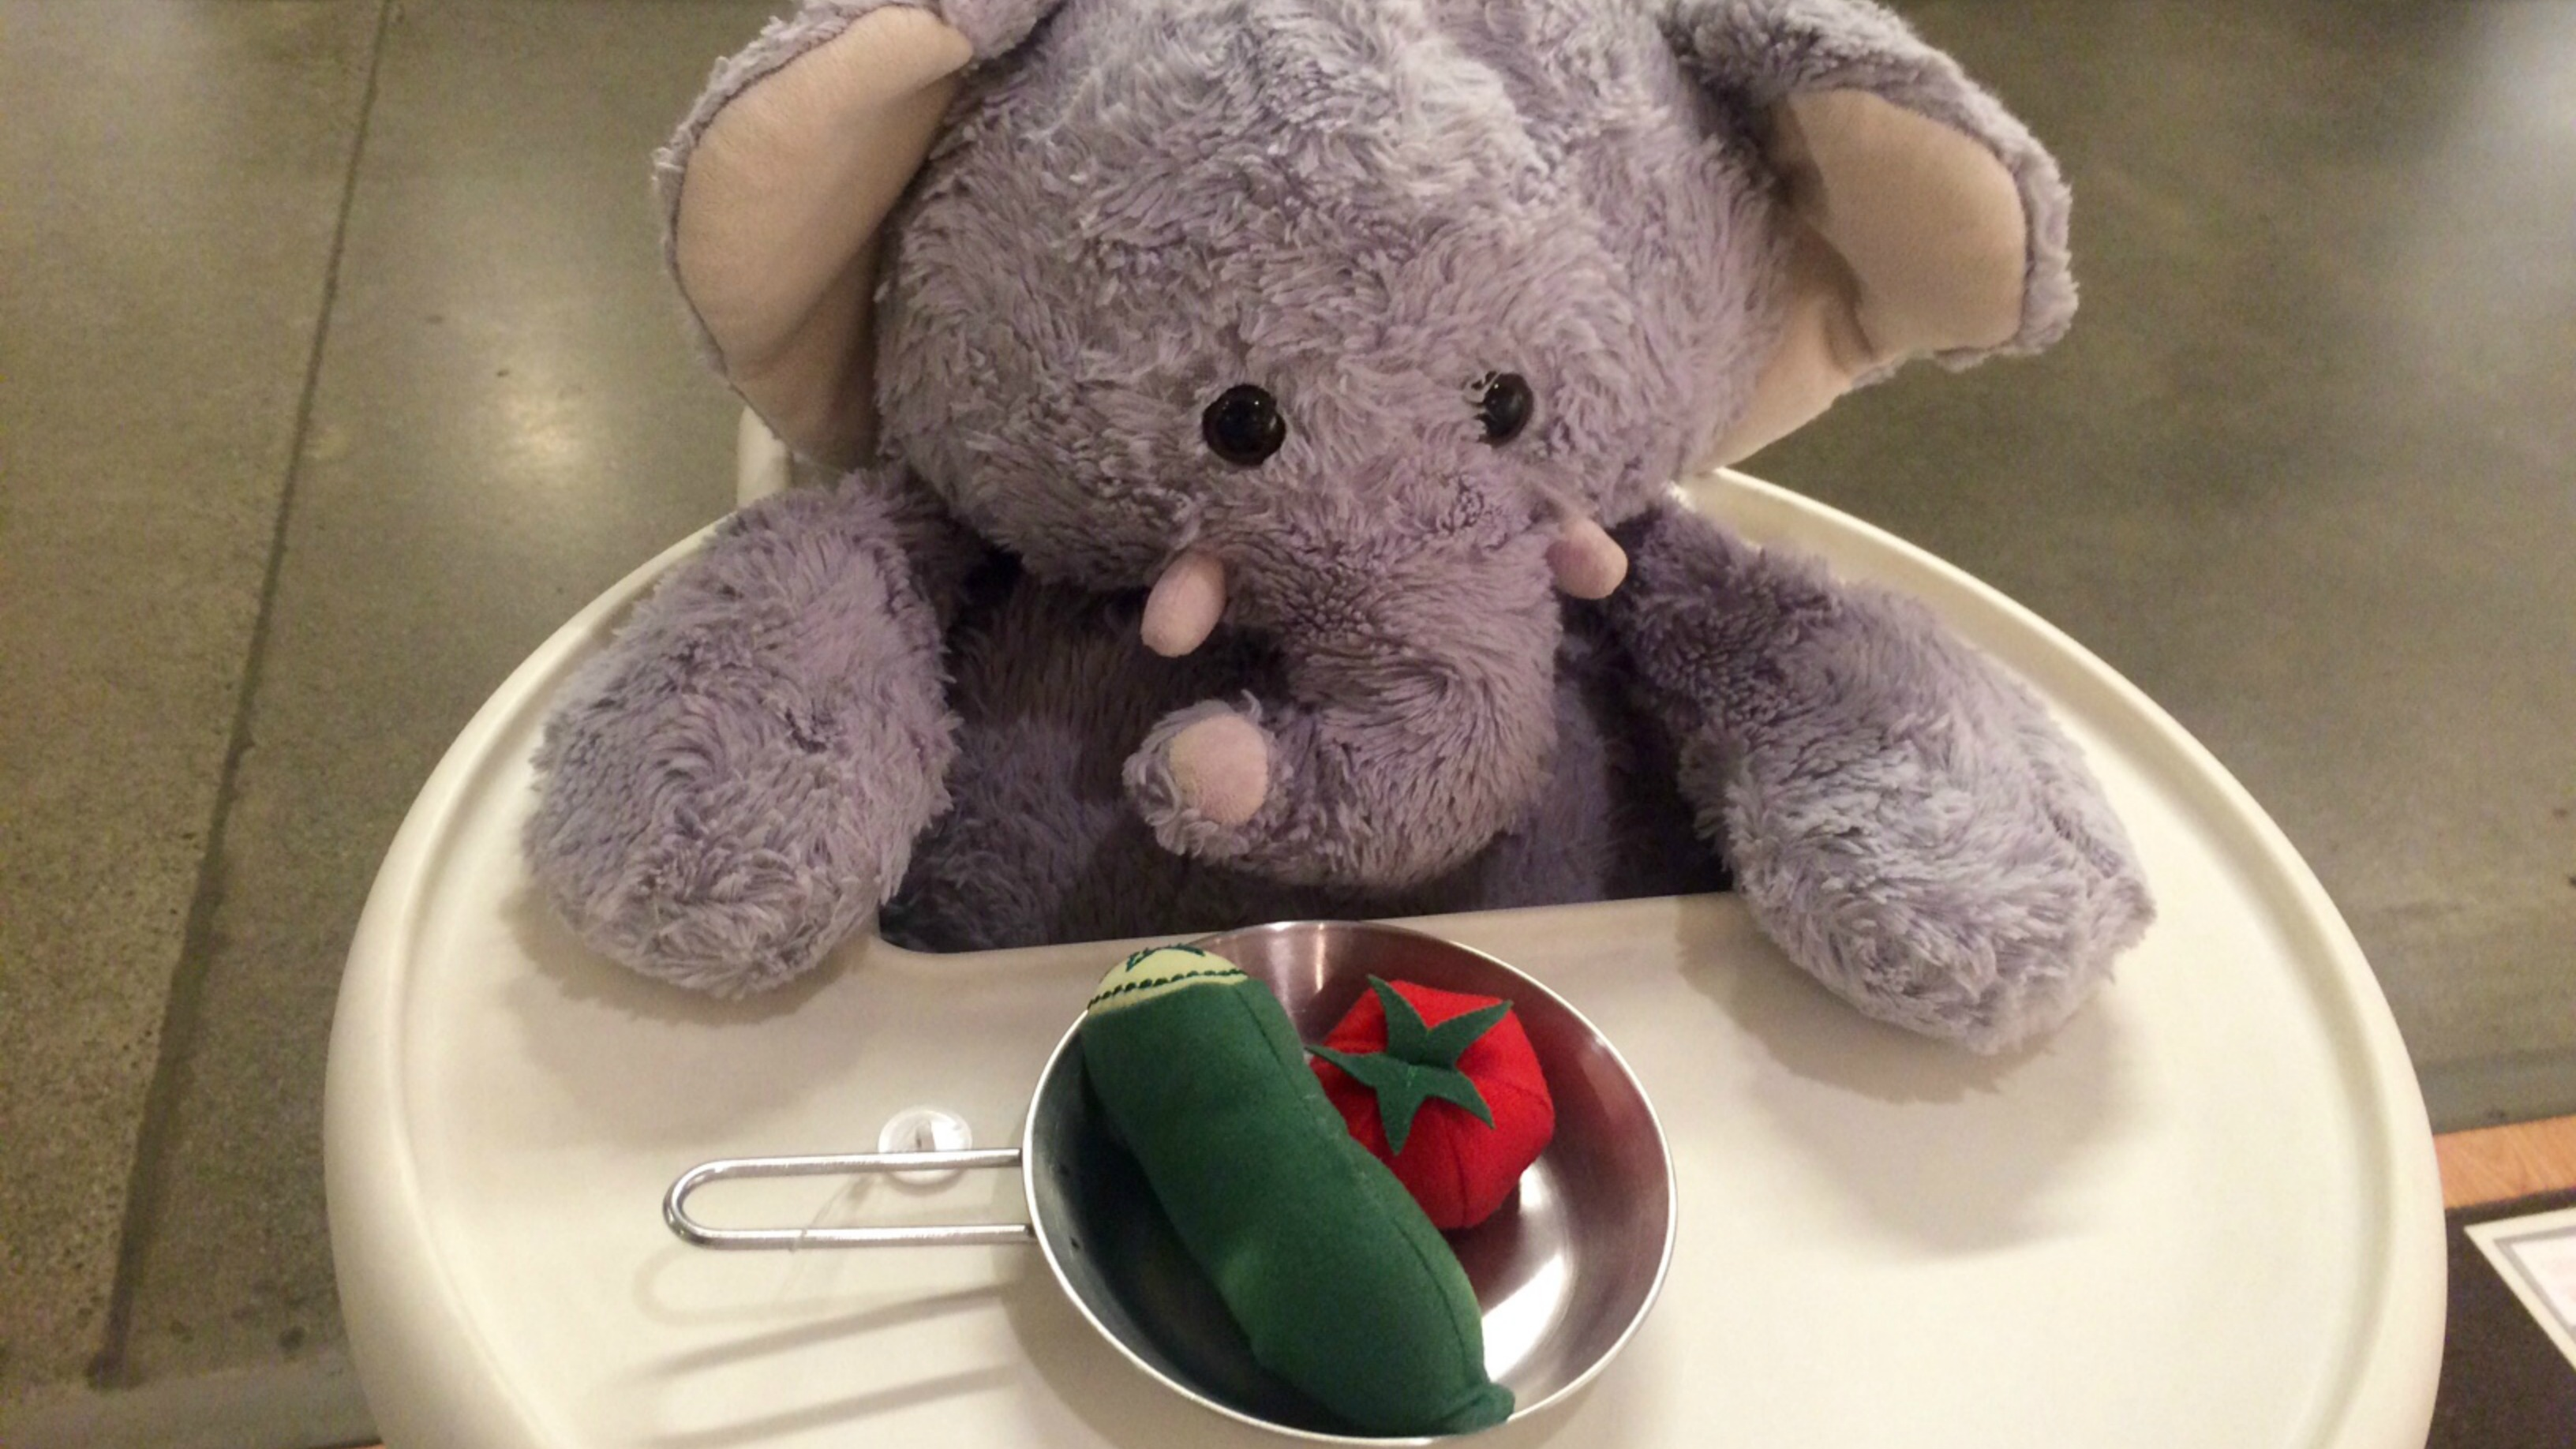 Ikea seattle trying to reunite lost stuffed elephant with for Ikea renton hours